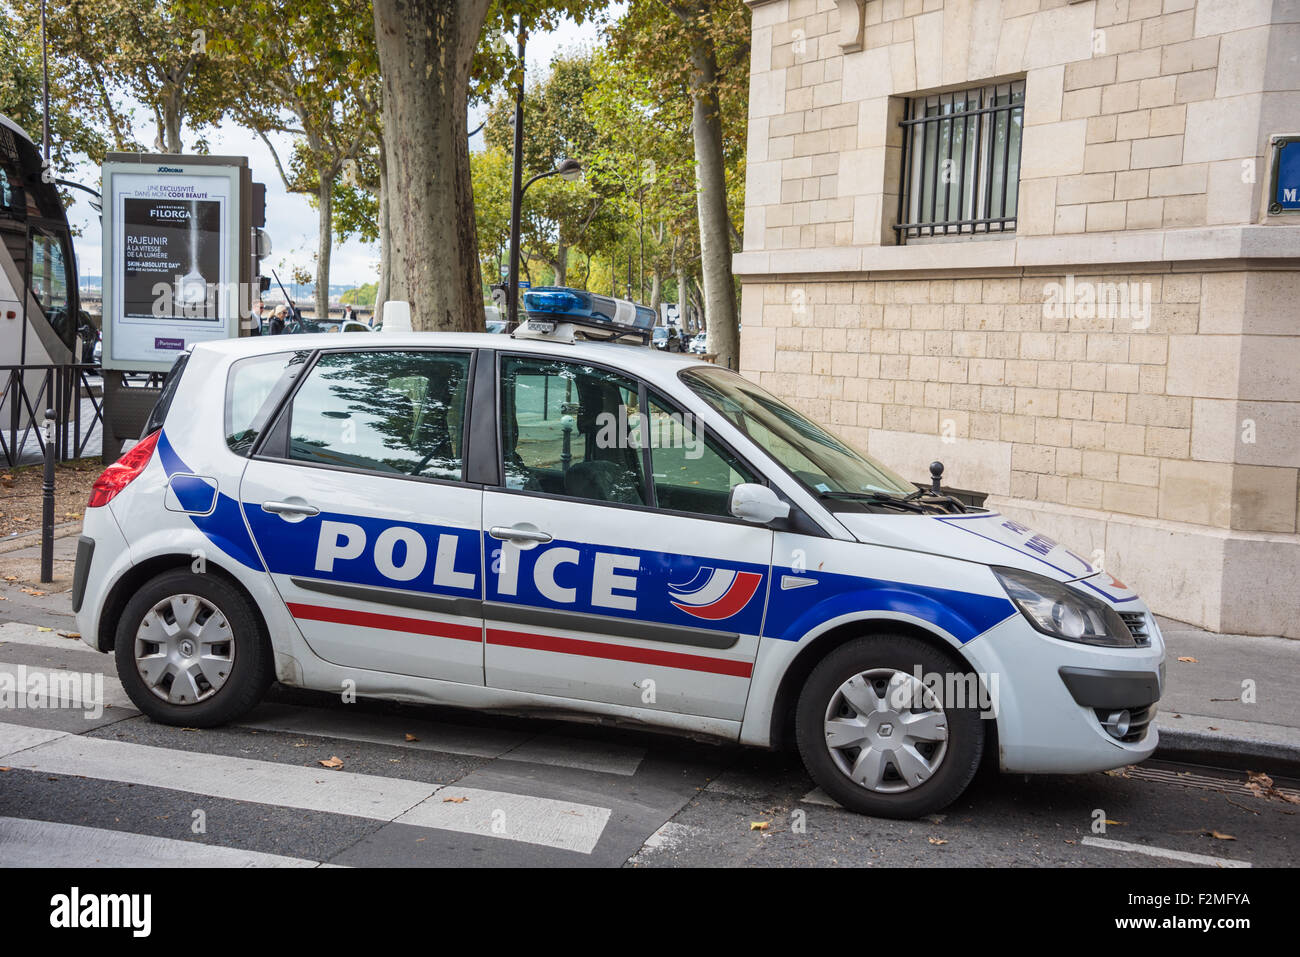 a french police car parked in a street in the european city of paris stock photo royalty free. Black Bedroom Furniture Sets. Home Design Ideas